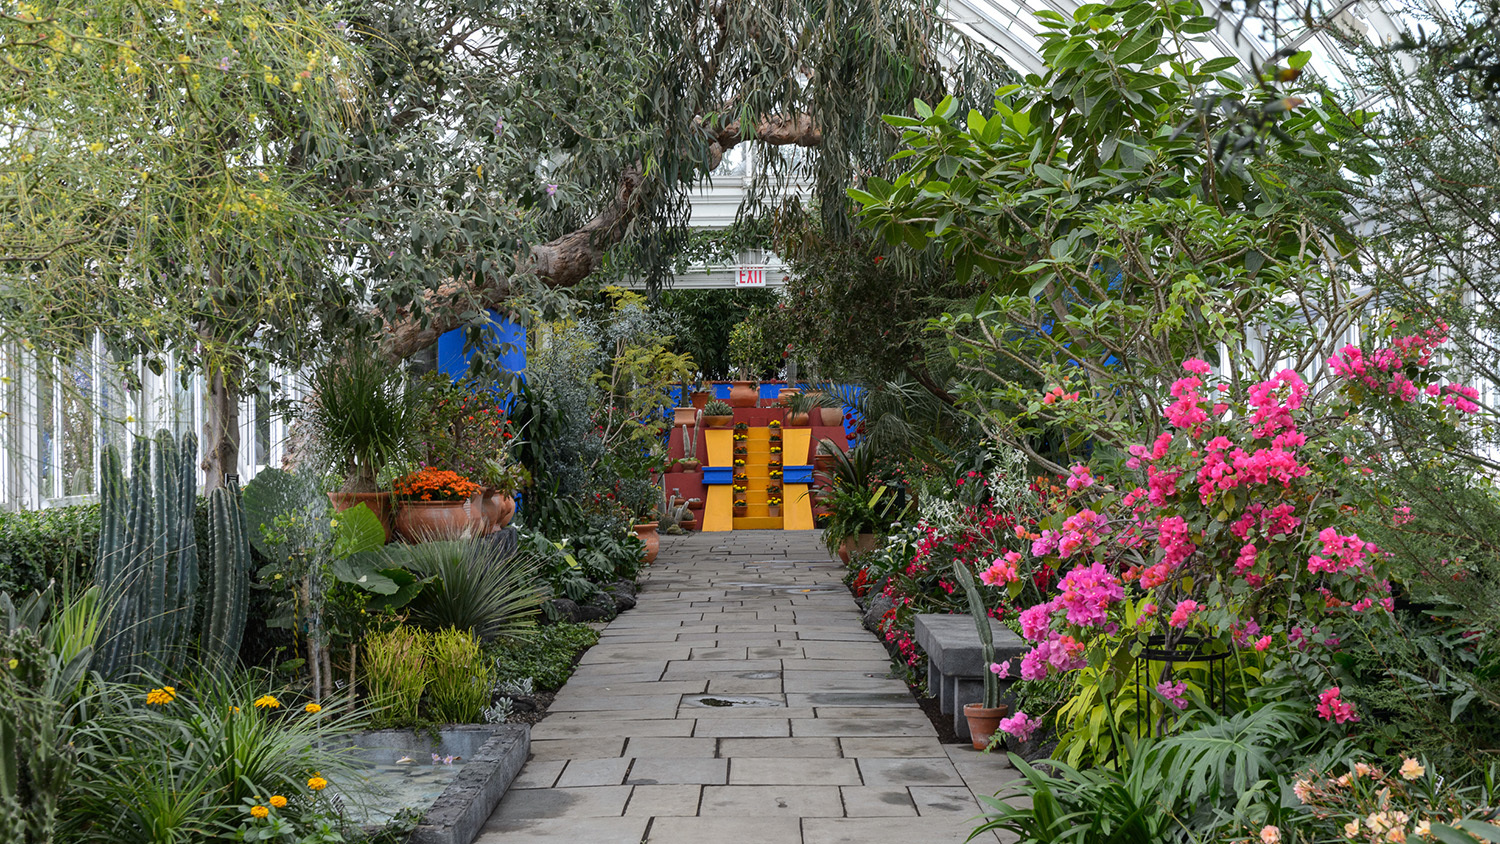 Preview the Botanical Garden's extravagant Frida Kahlo exhibition